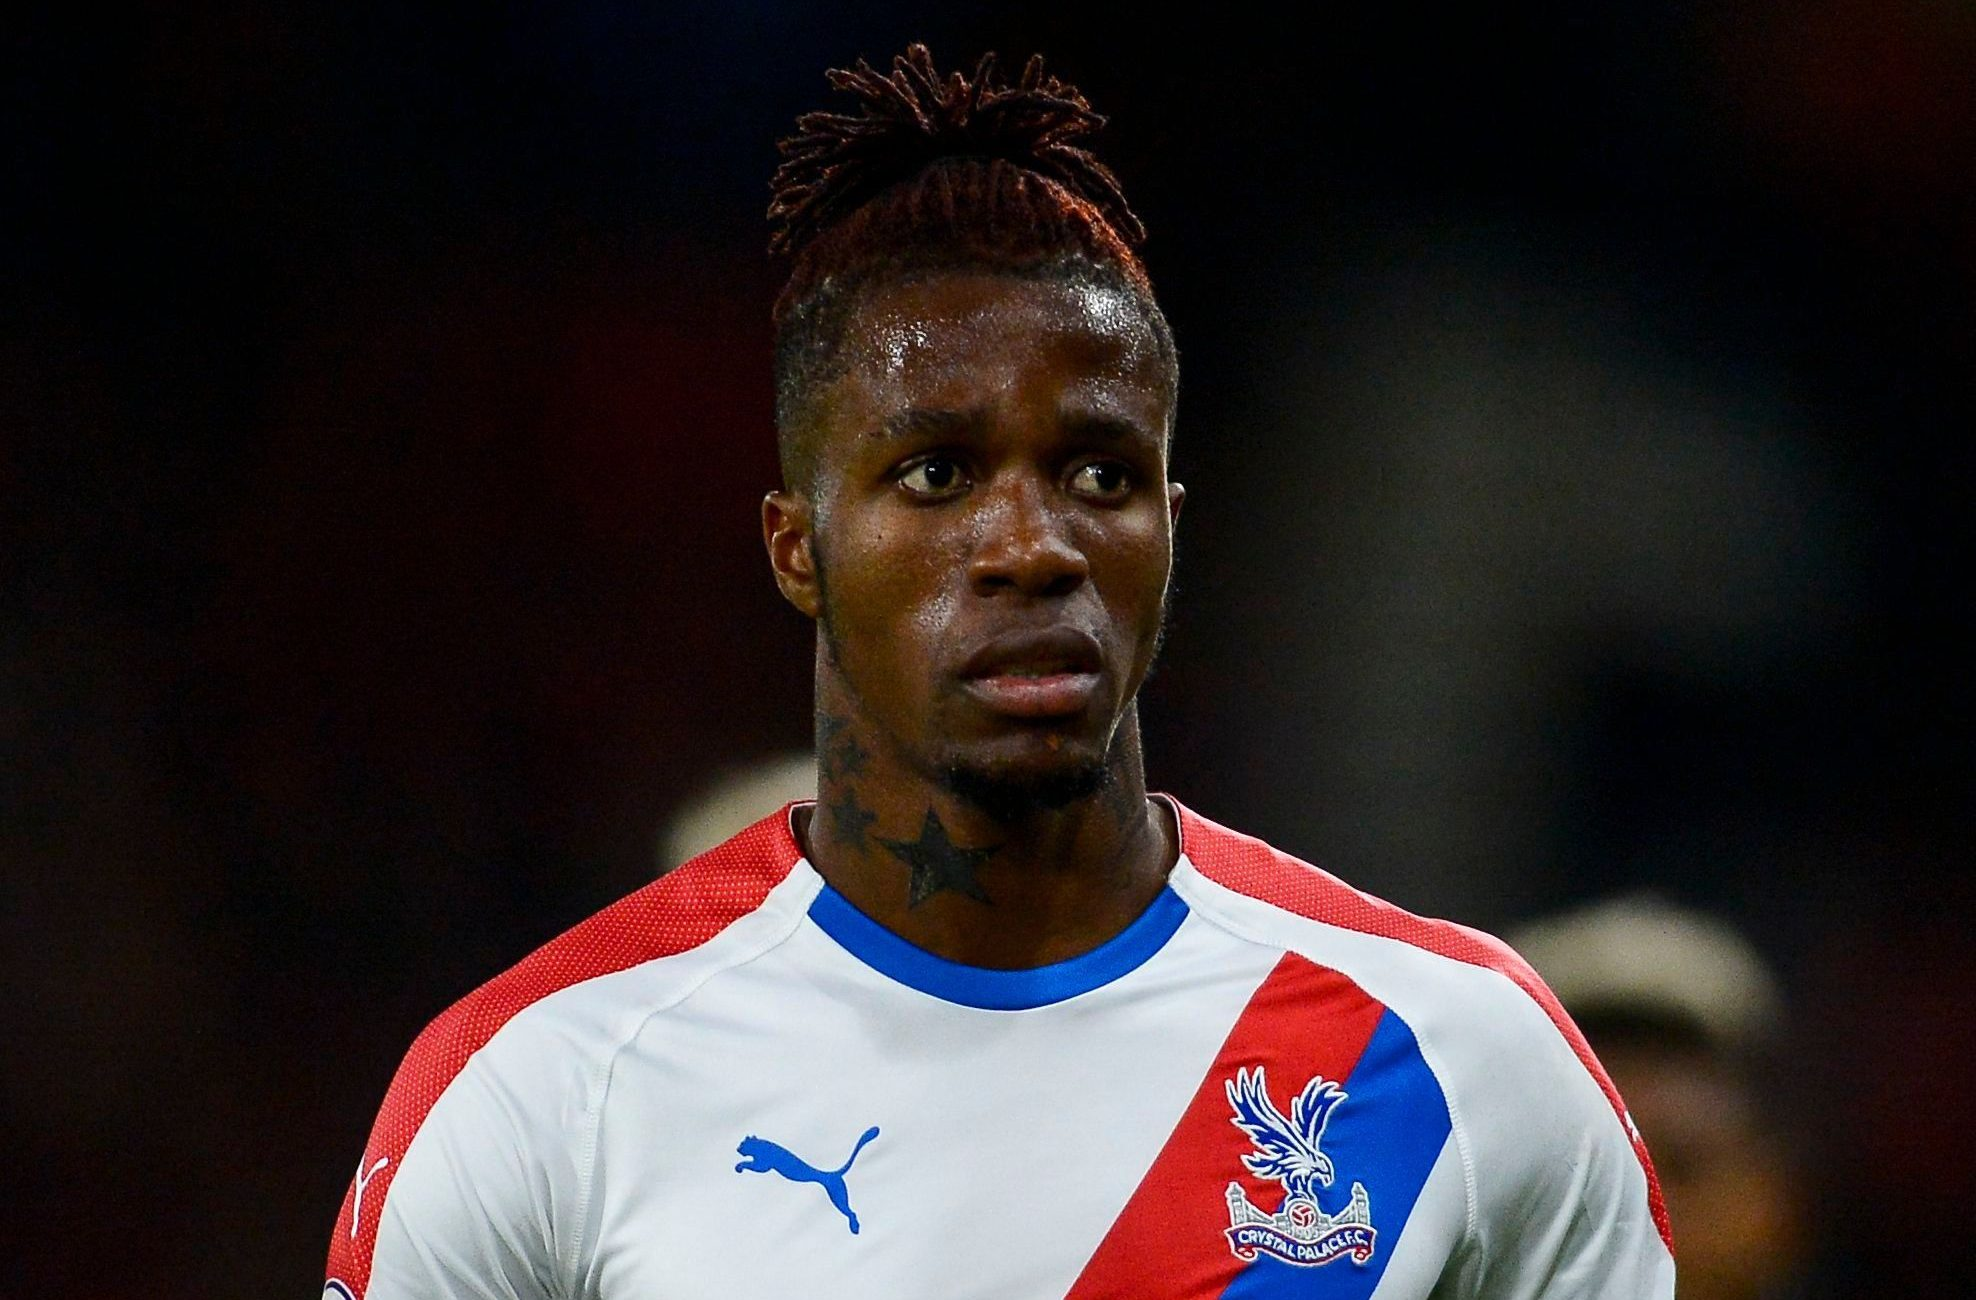 Wilfried Zaha snubs Crystal Palace fans by storming down tunnel after Bournemouth defeat